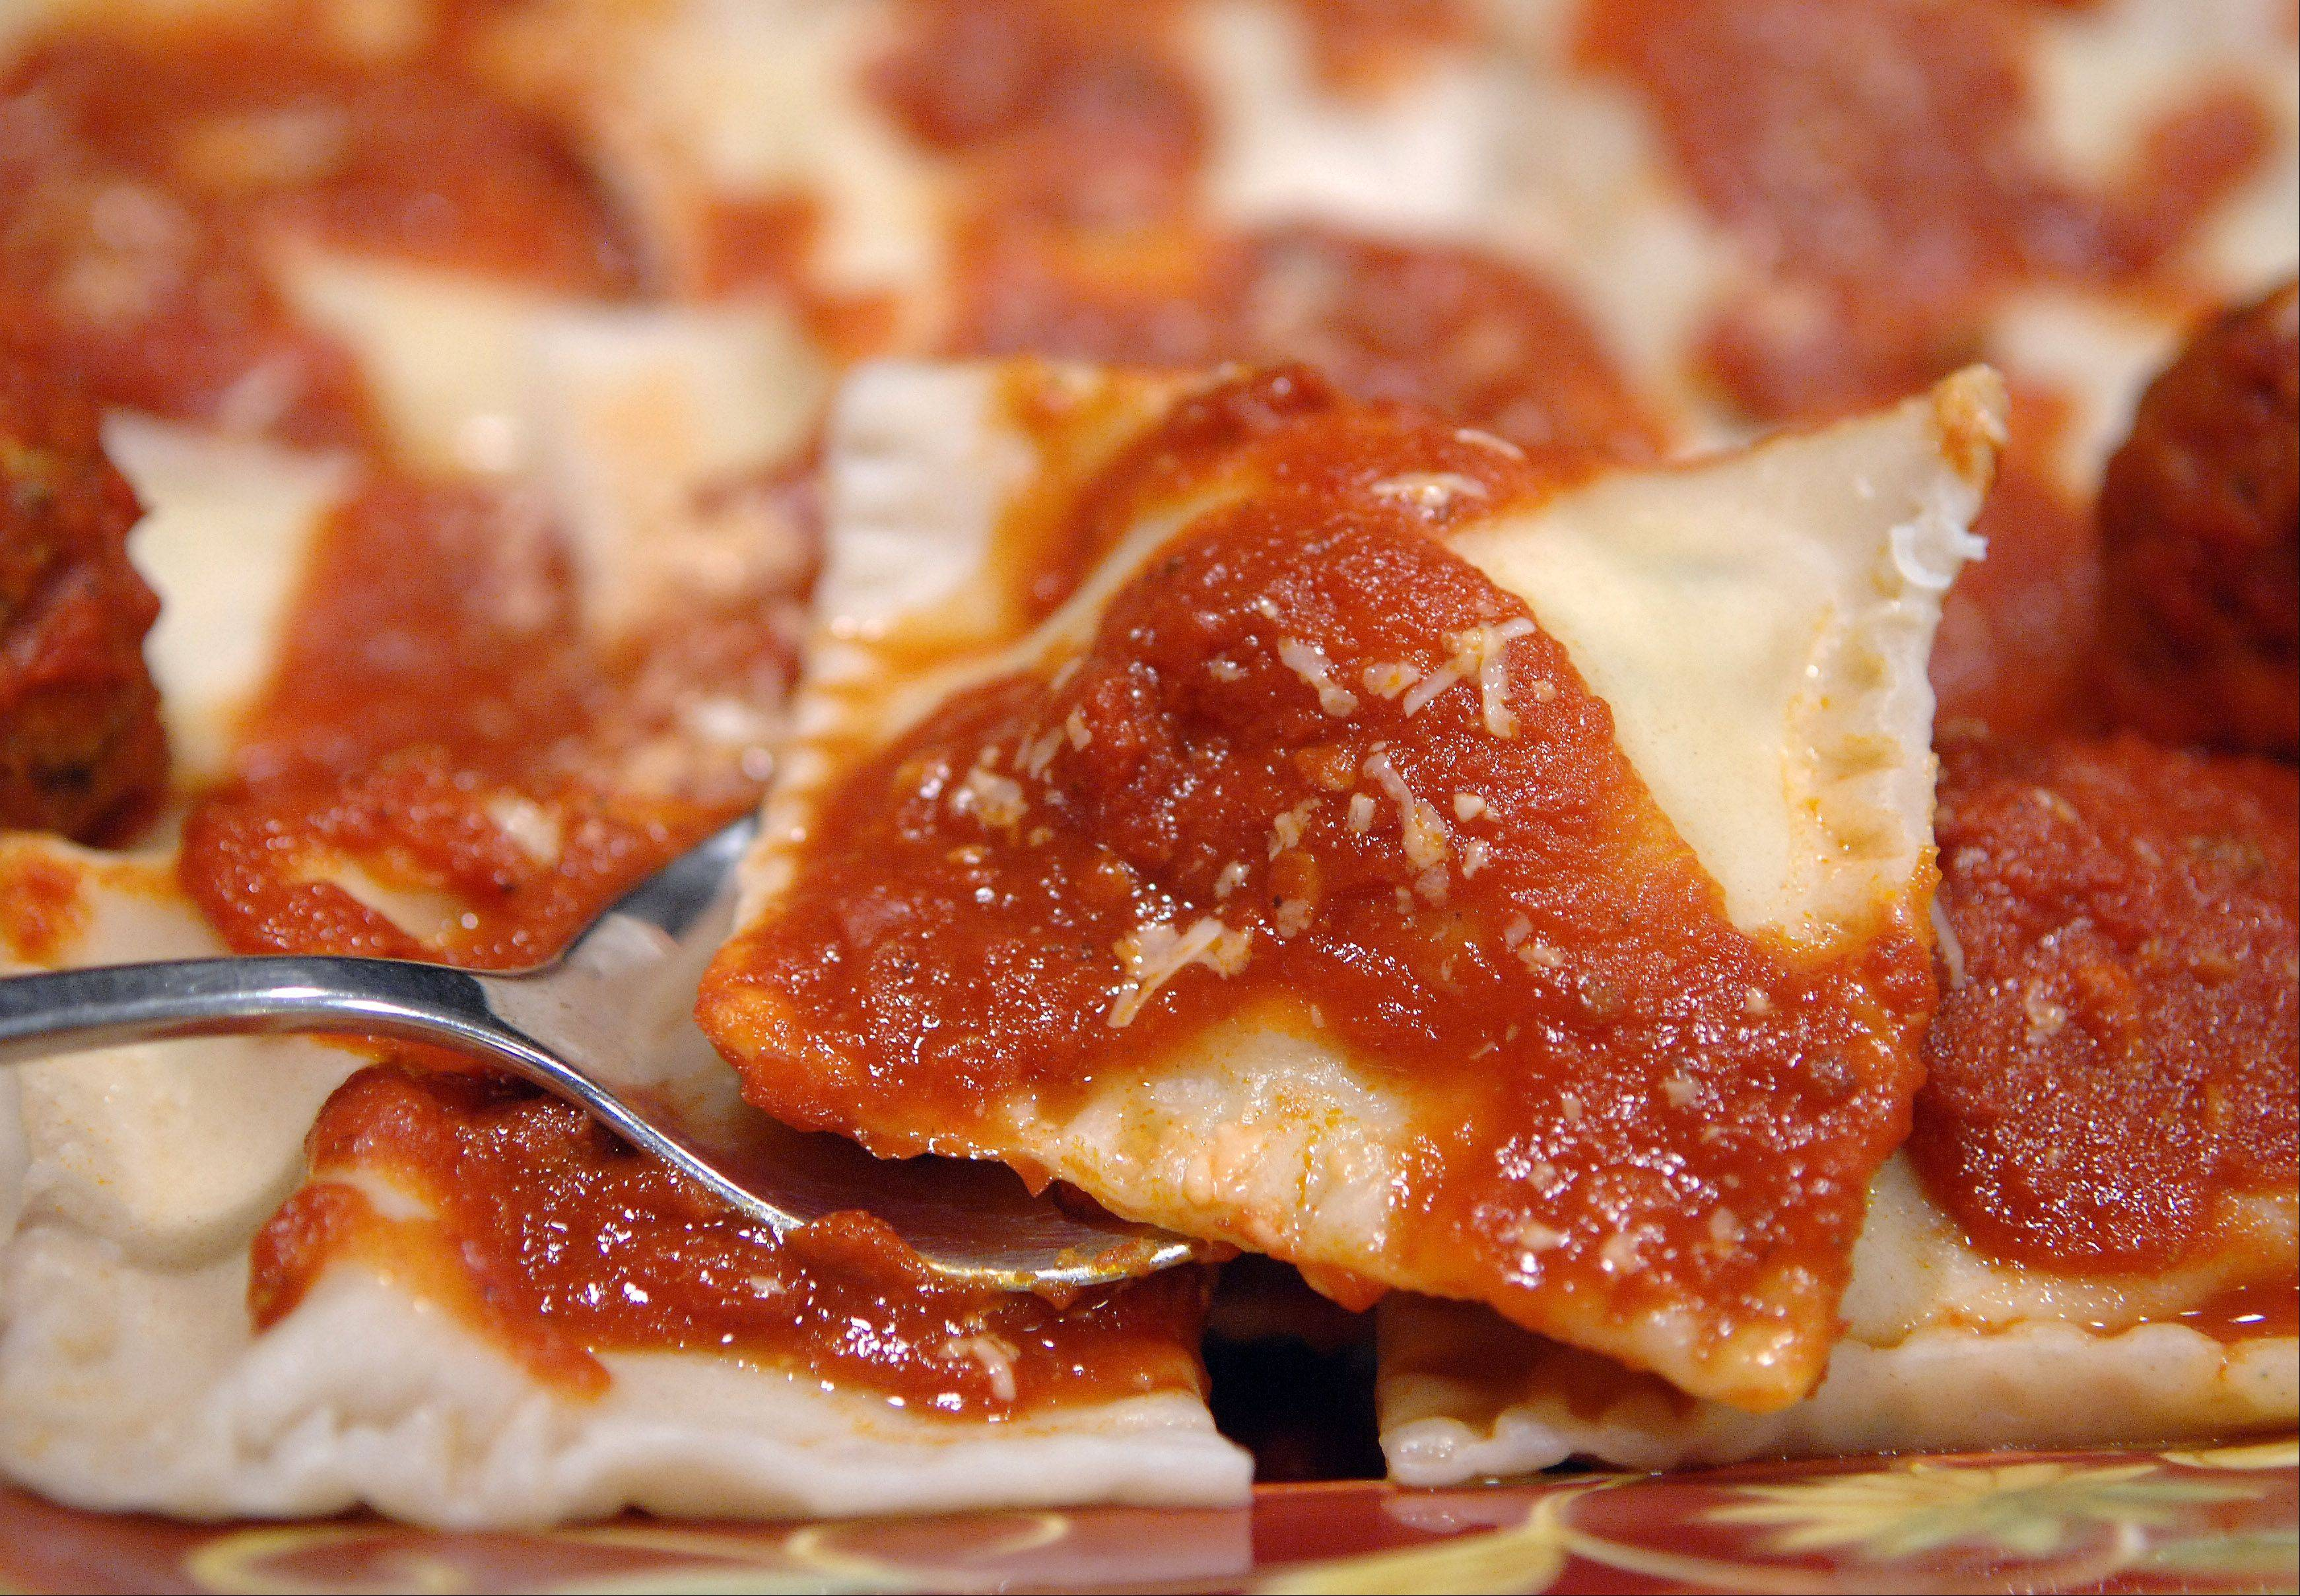 Judy Annis makes homemade cheese-filled ravioli for Christmas dinner and extra to freeze and enjoy into the new year.